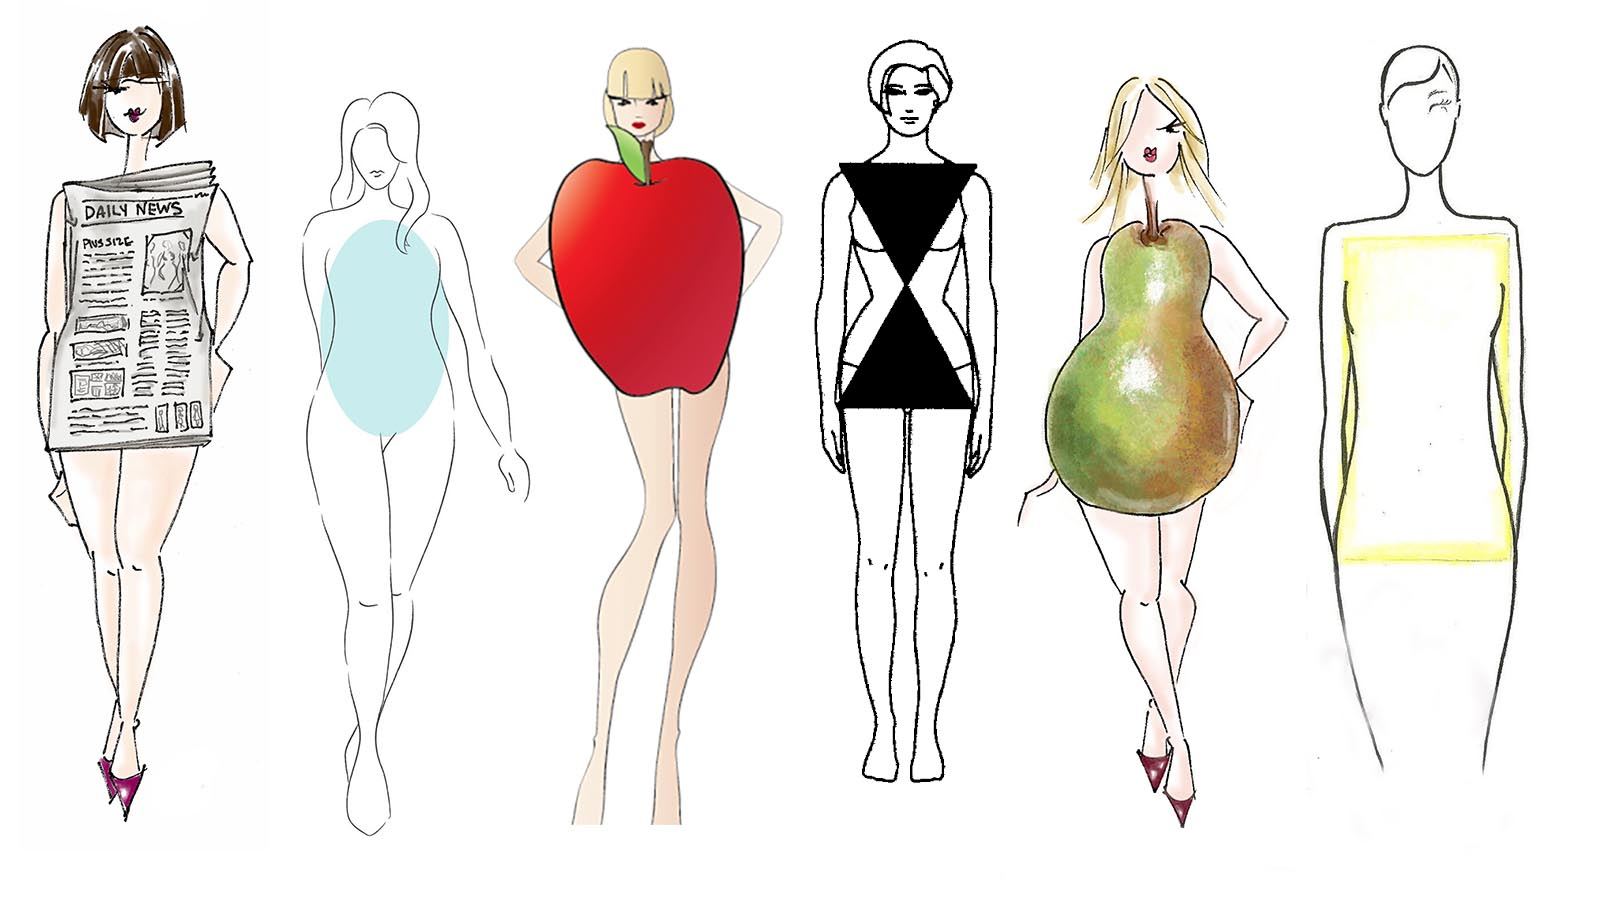 It's time we stop comparing women's body shapes to fruit